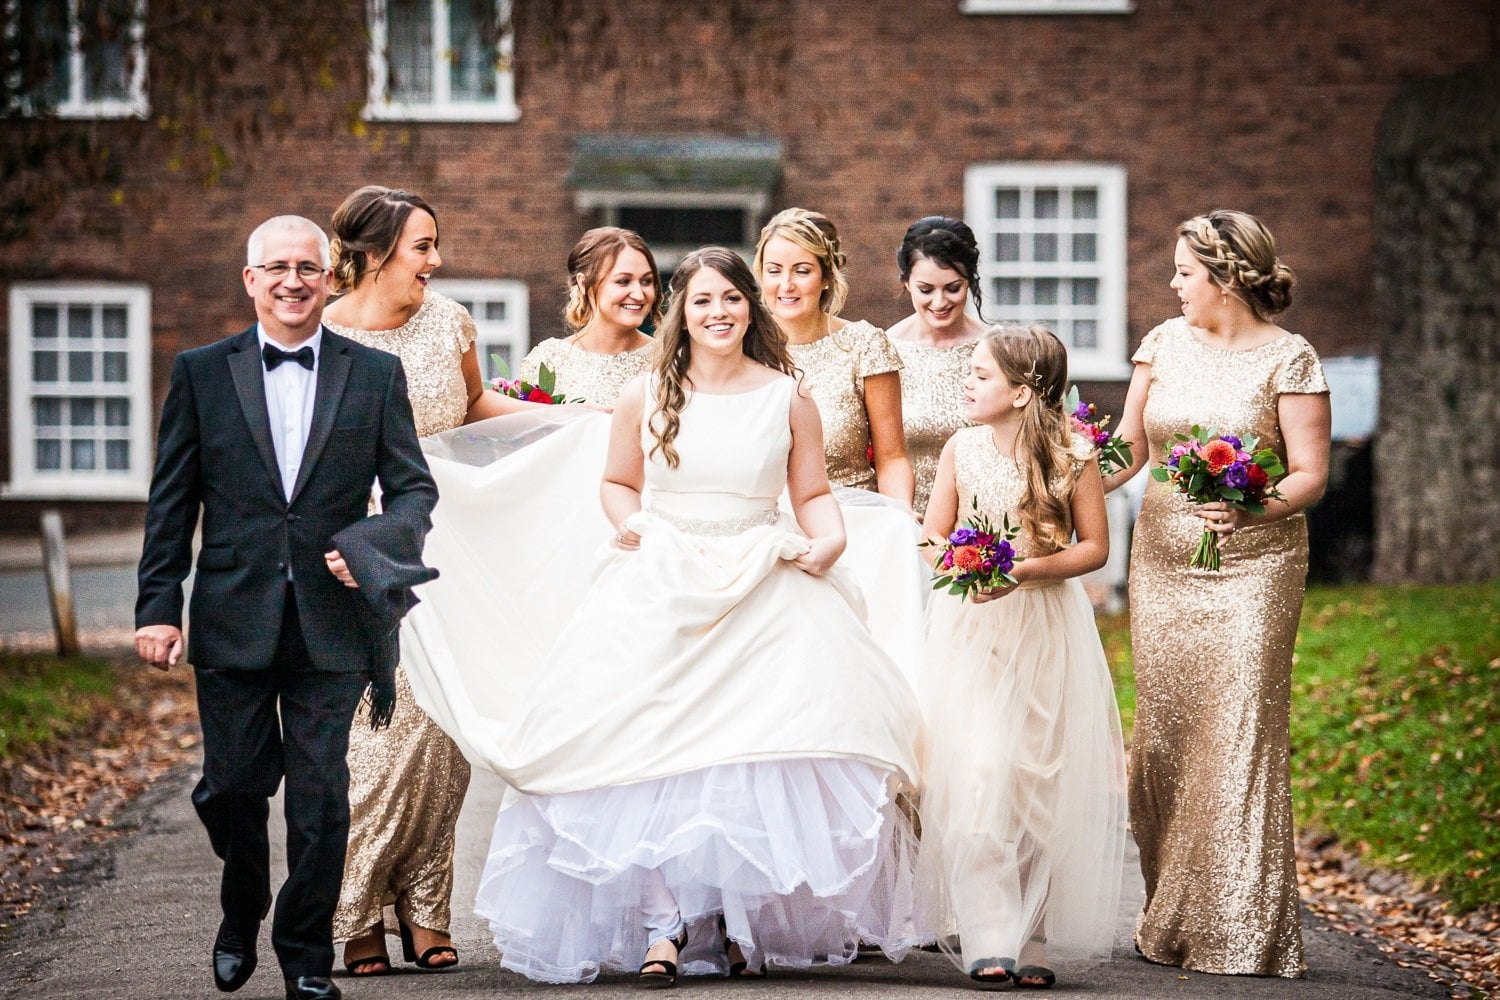 Photography by Bryan - Lancashire wedding photographer